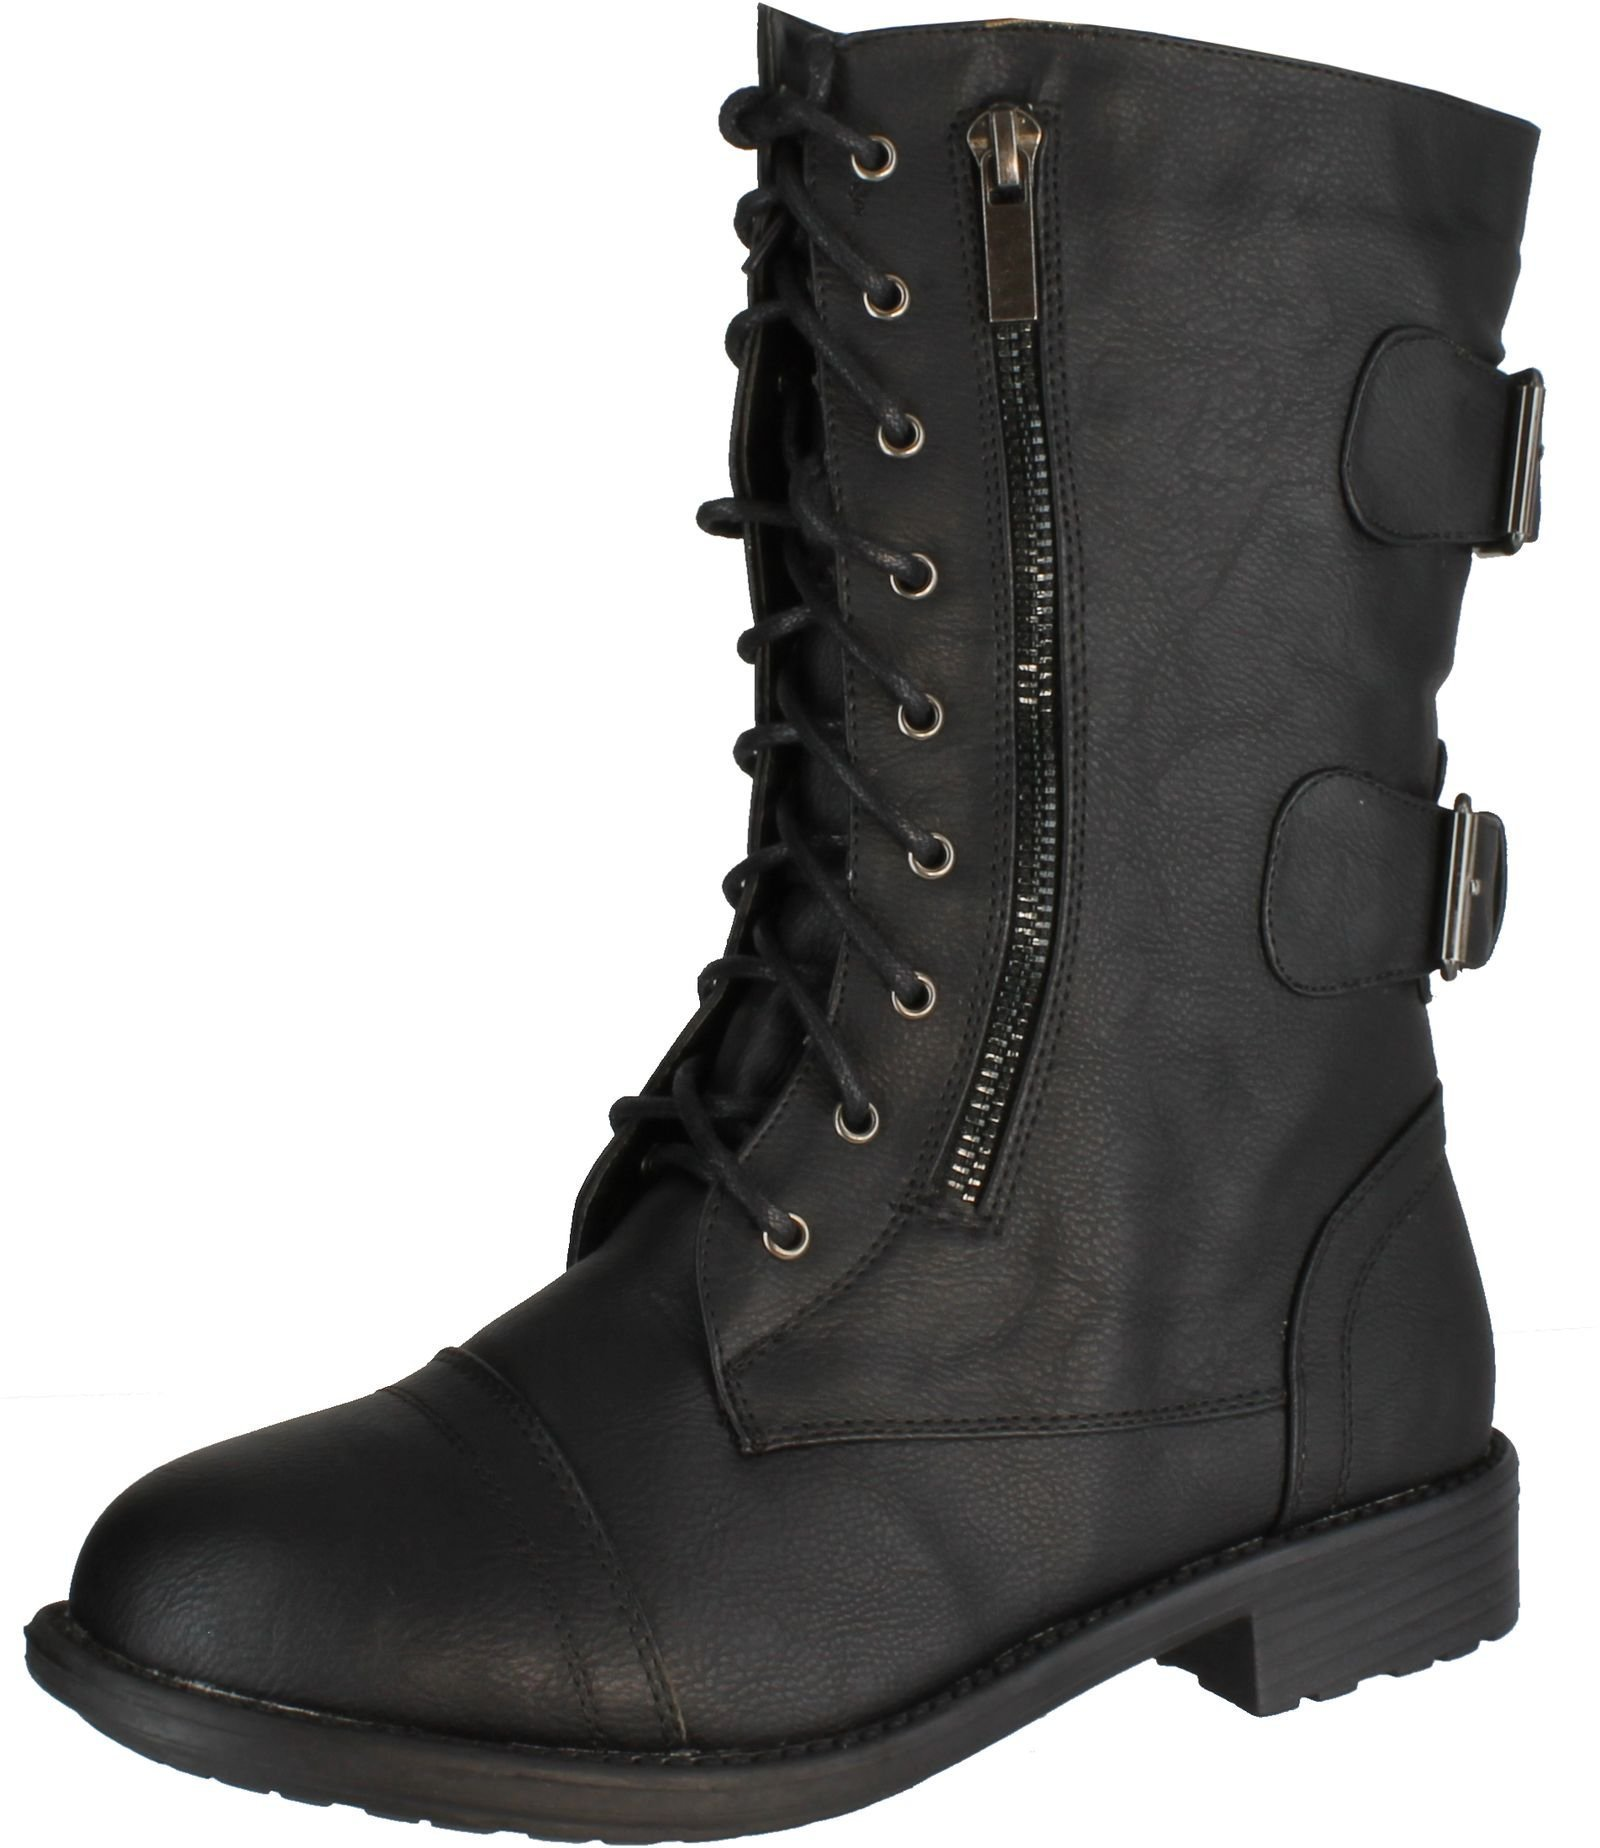 Top Moda Pack-72 Women's Fashion Mid Calf Low Heel Combat Military Zipper Lace up Shoes (11, Black)